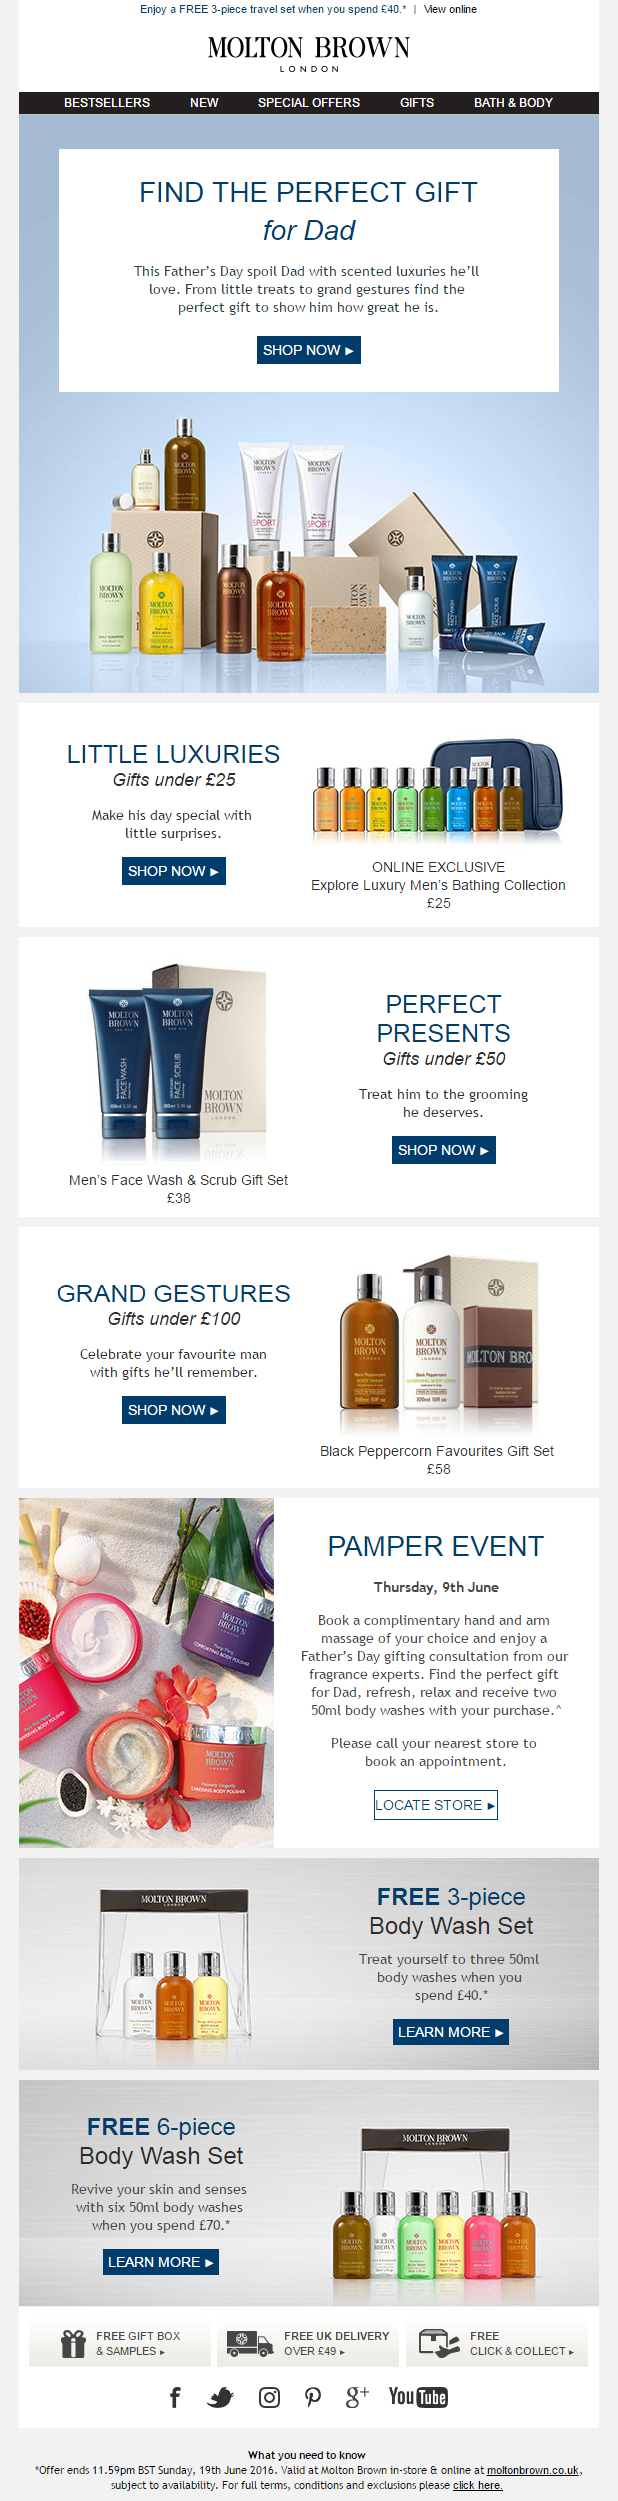 Molton Brown Father\'s Day gift ideas email #EmailMarketing #Email ...